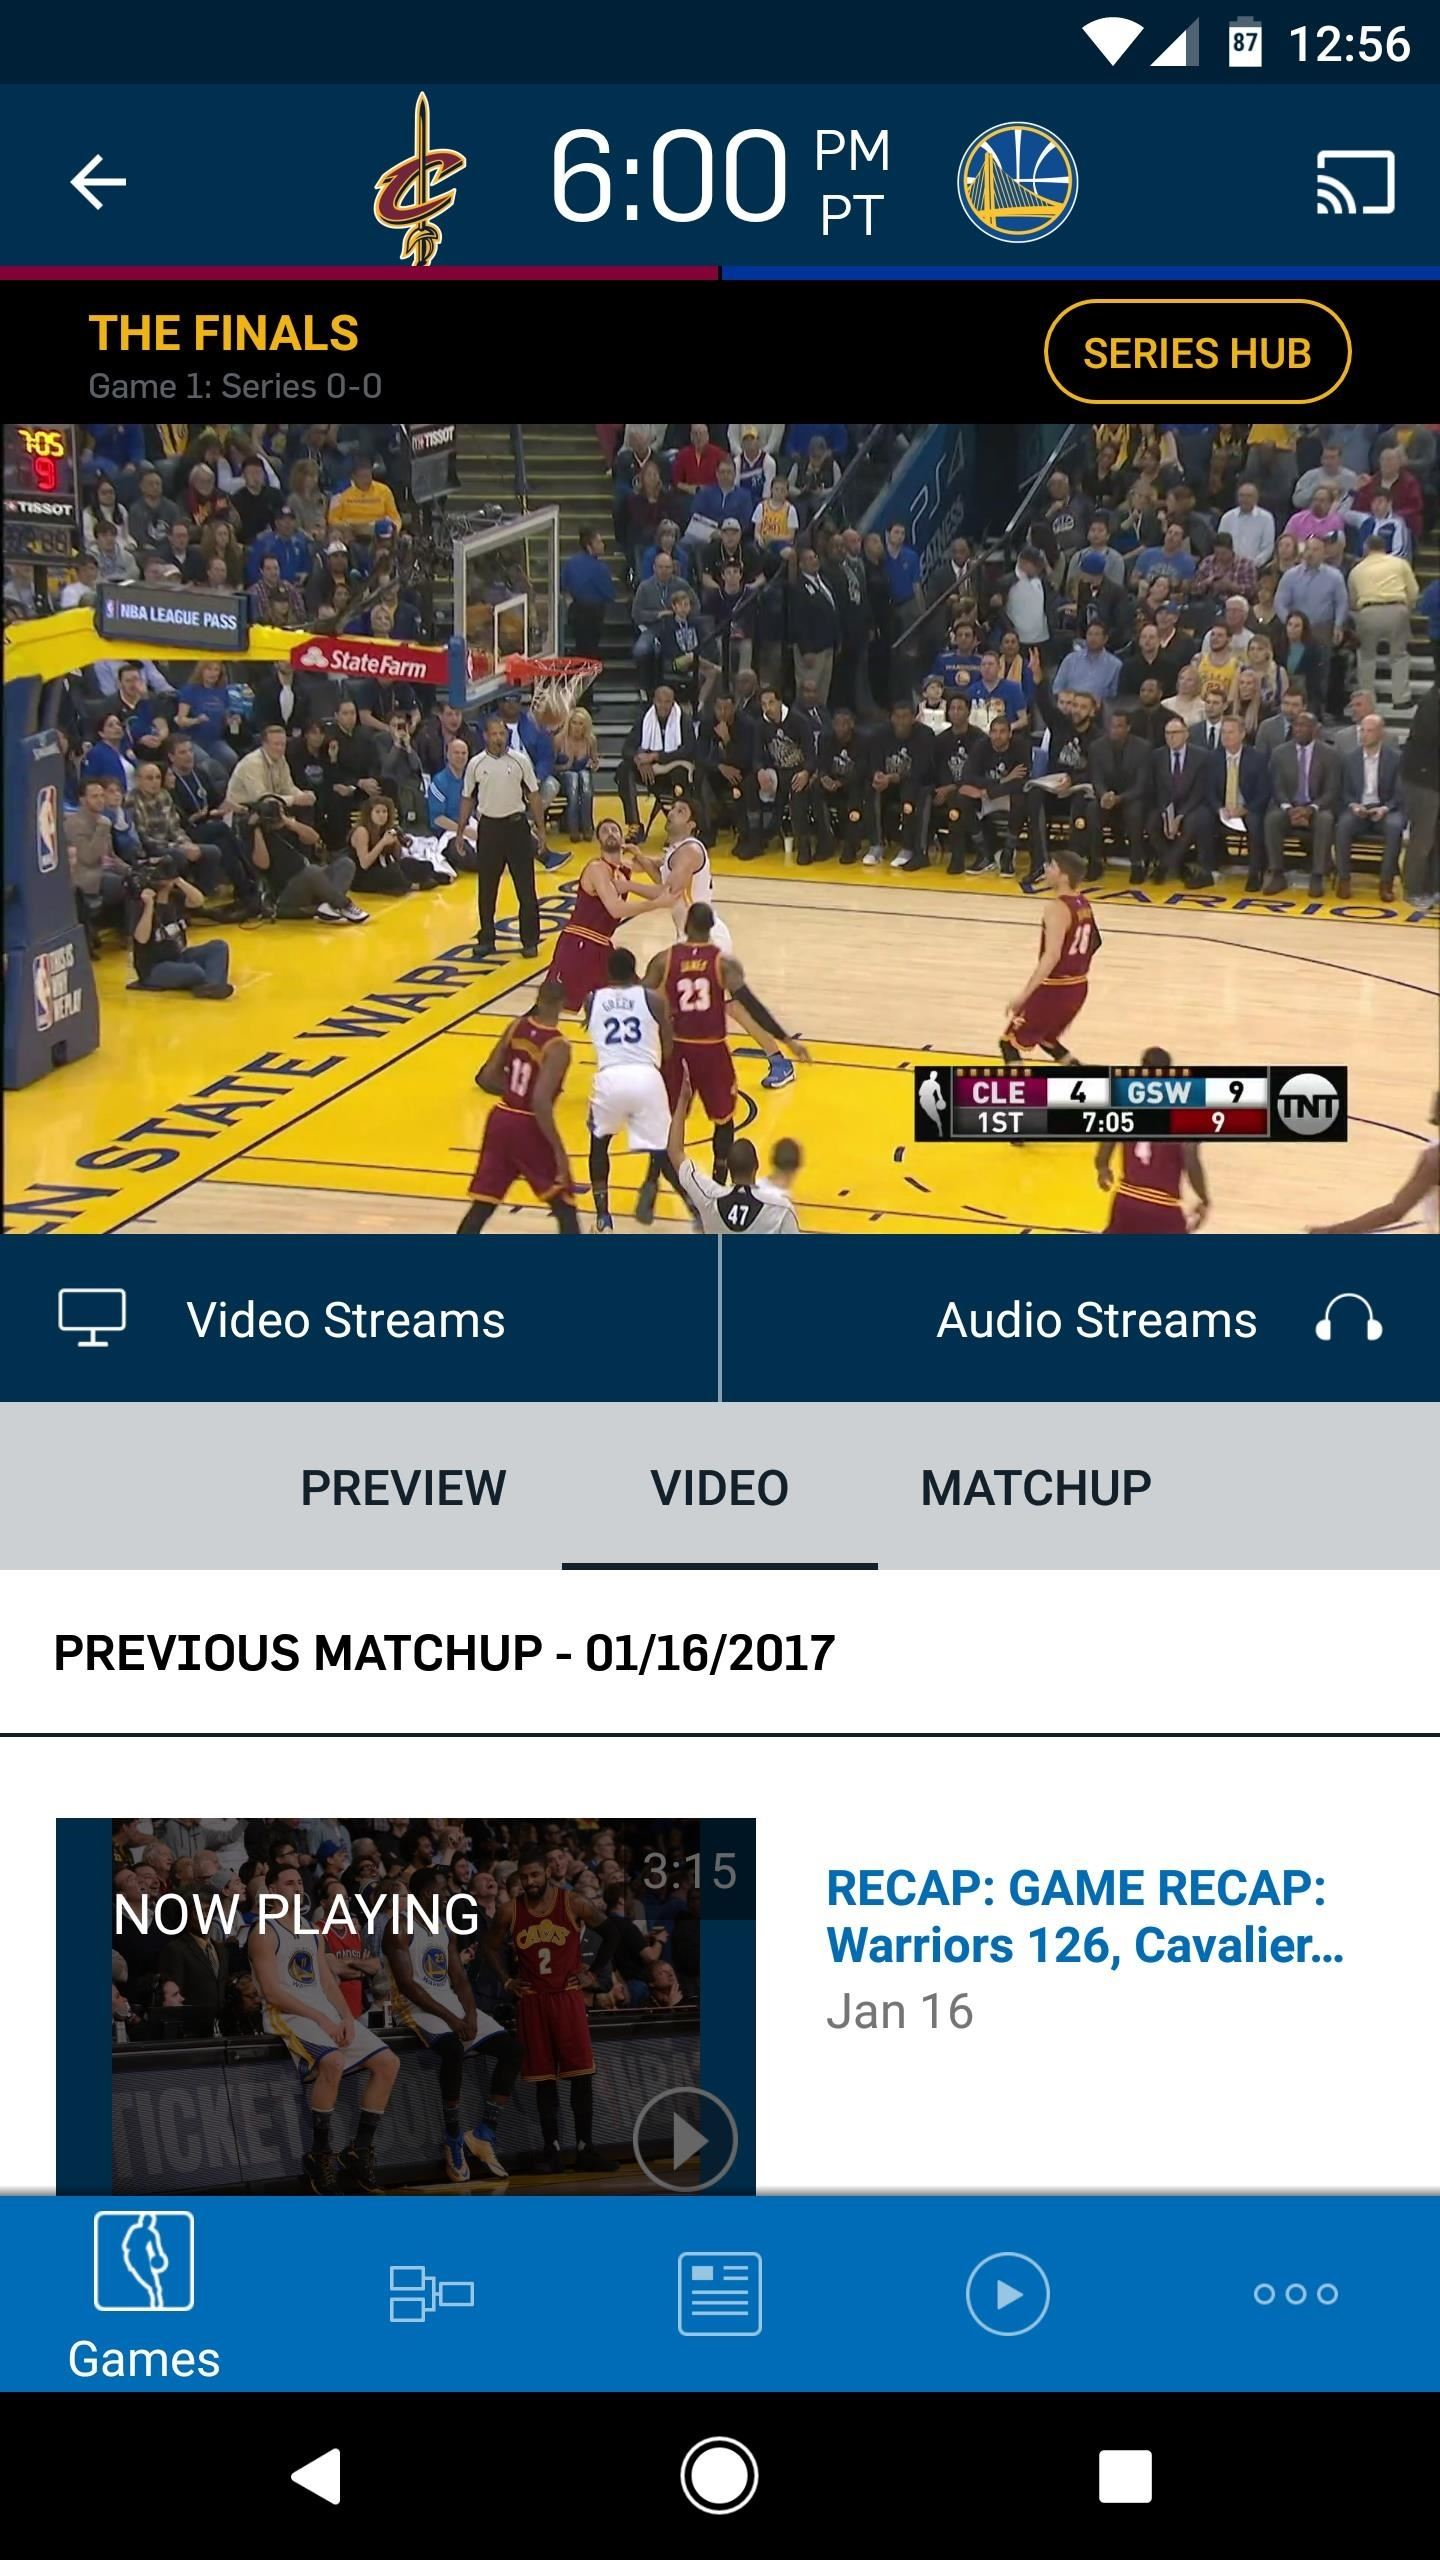 Cavs vs. Warriors: How to Watch the 2017 NBA Finals on Your Smartphone for Free — Without a Cable Subscription